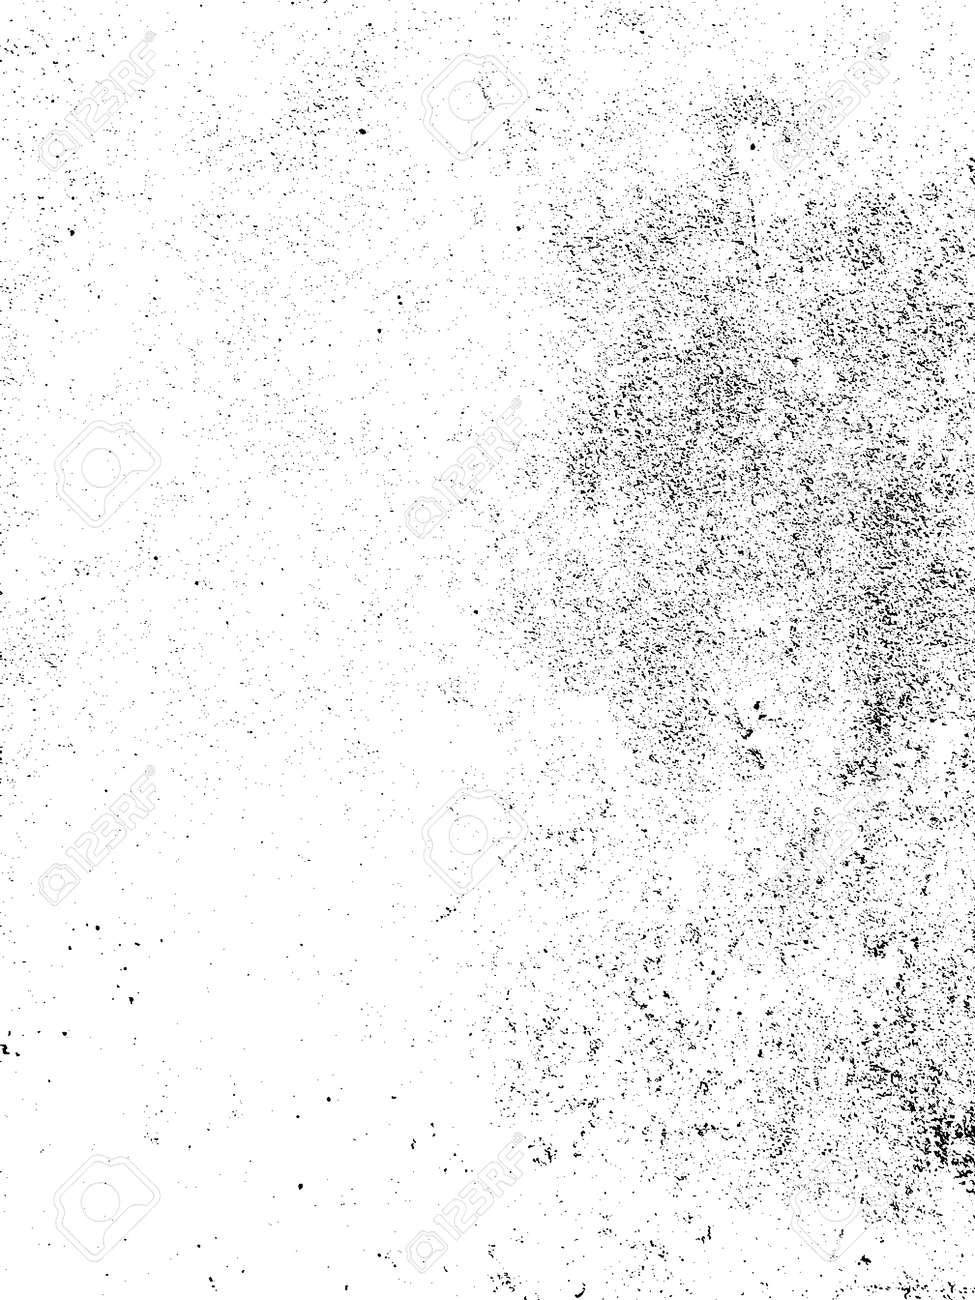 Cement texture. Concrete overlay black and white texture. - 169291844